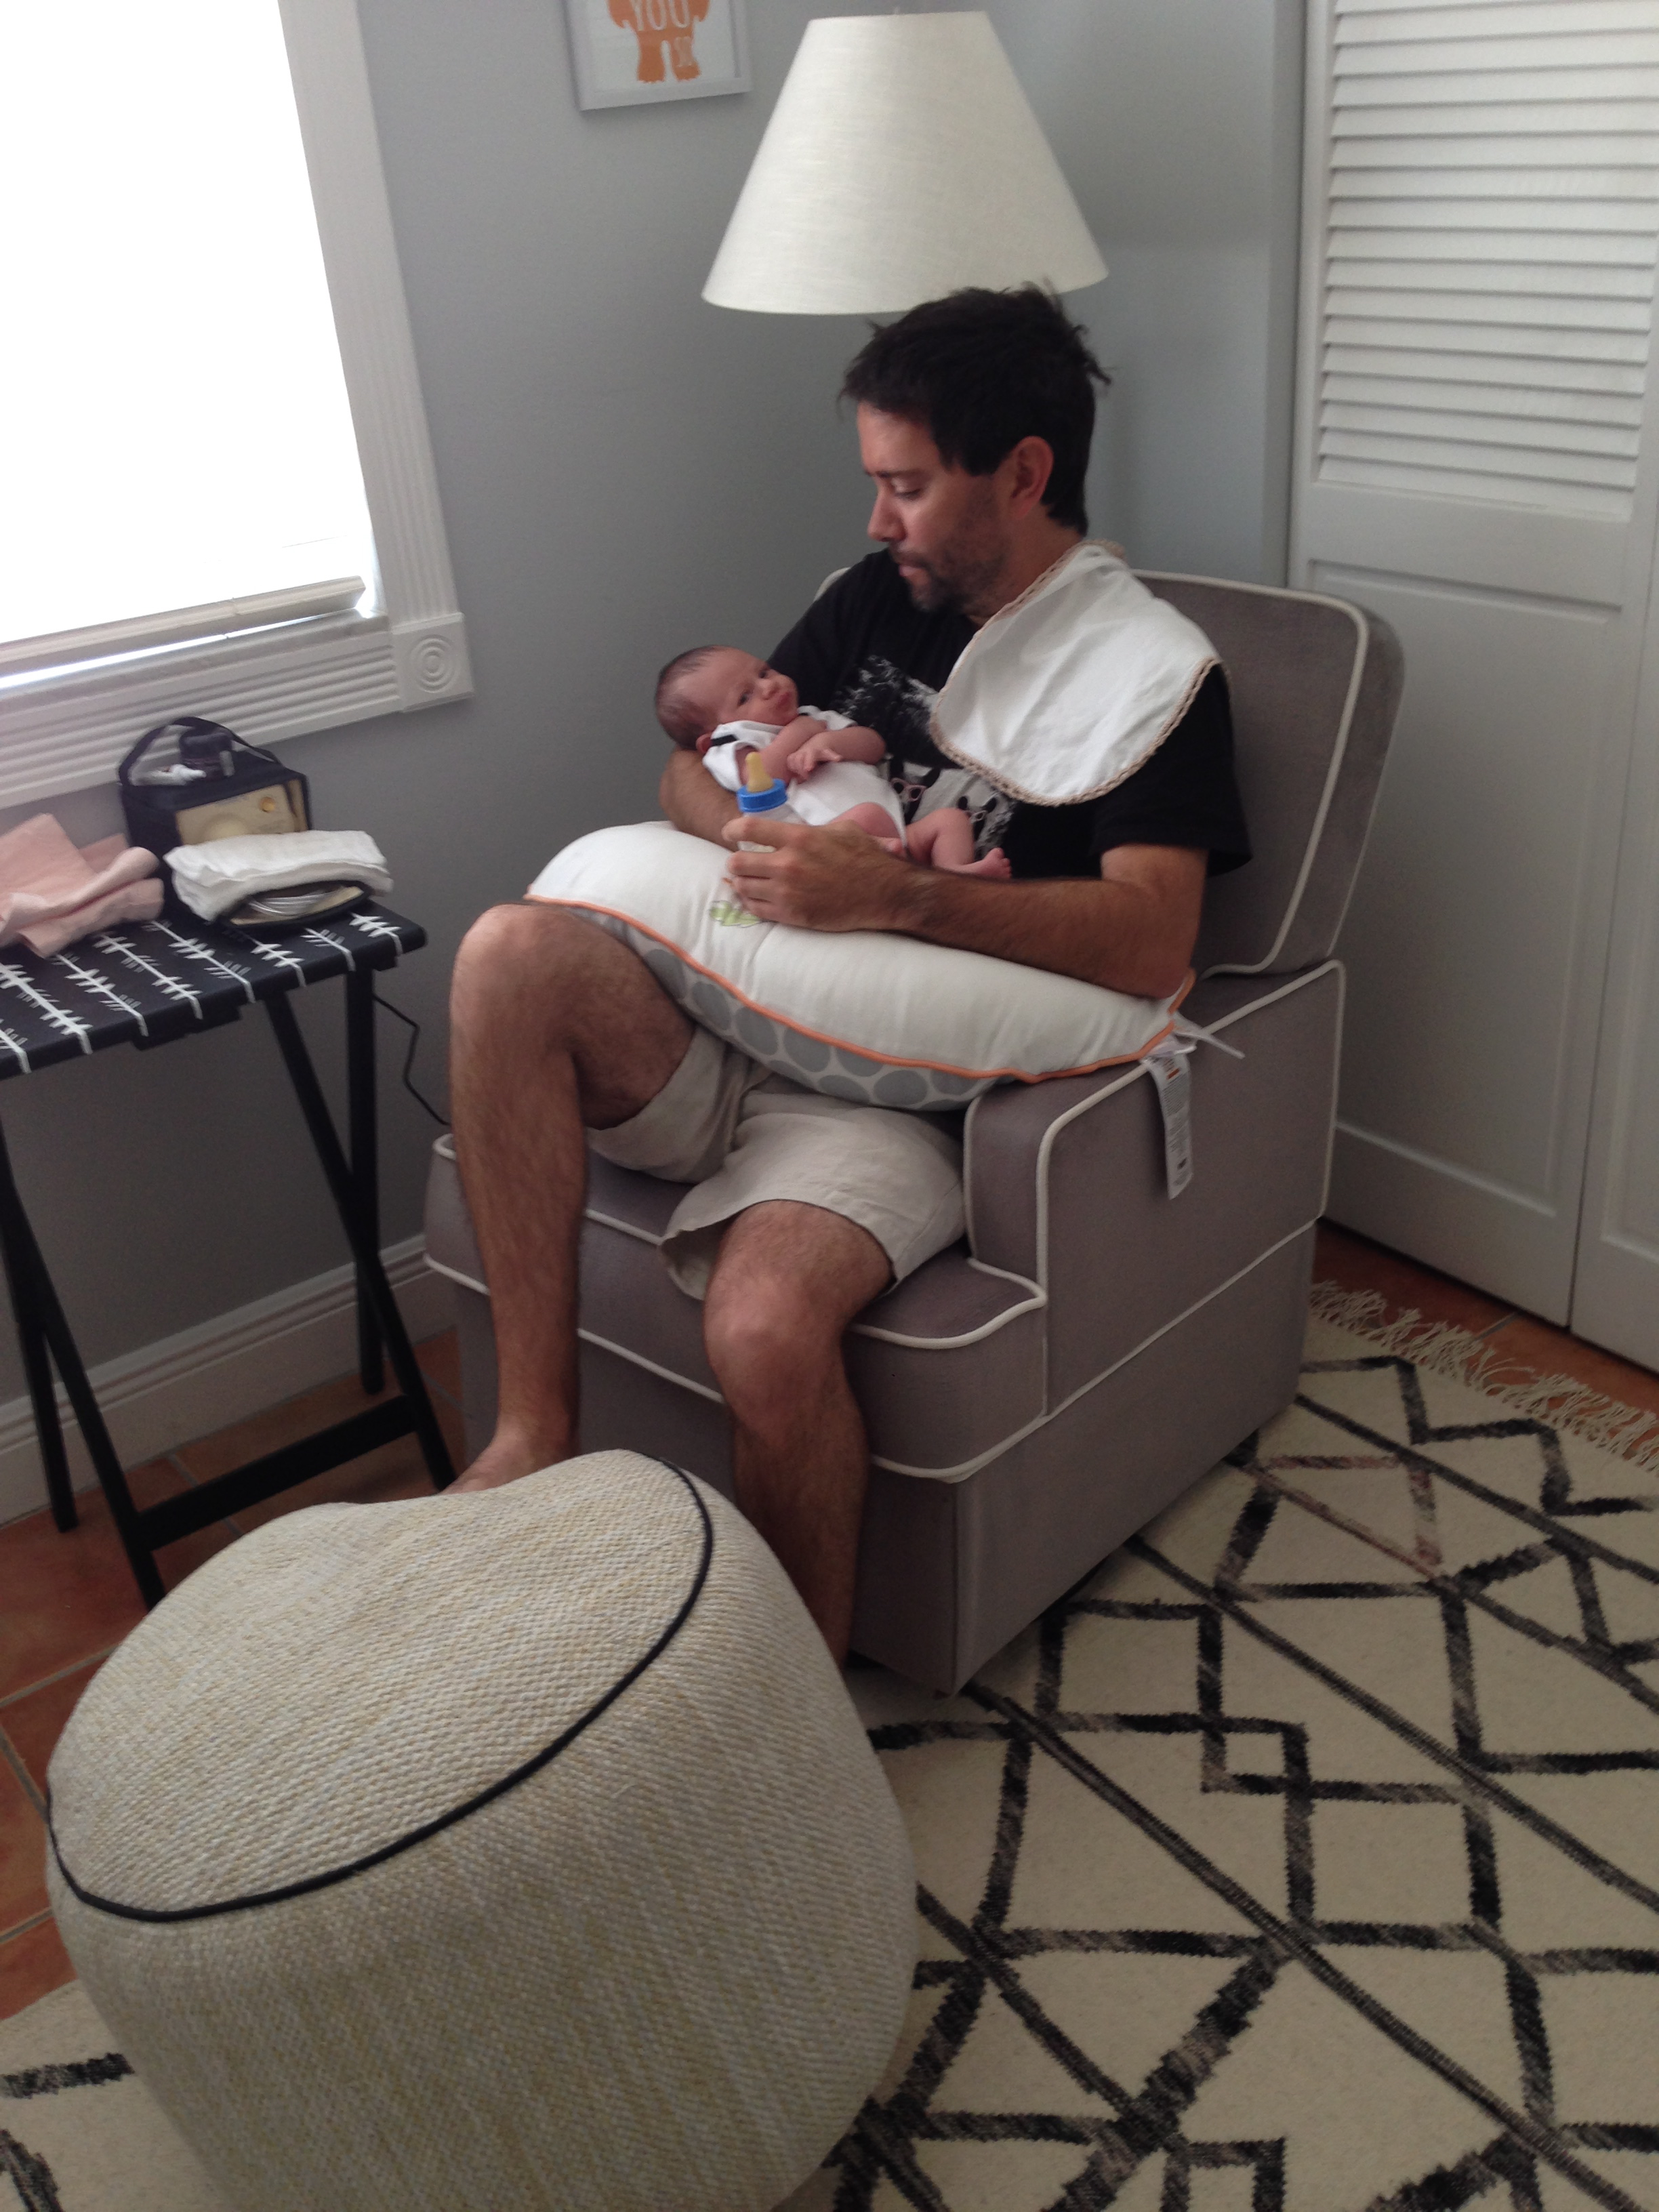 FF feeding Alfie on our glider. Ottoman from Target. Rug from West Elm. Folding table with Medela Breastpump.